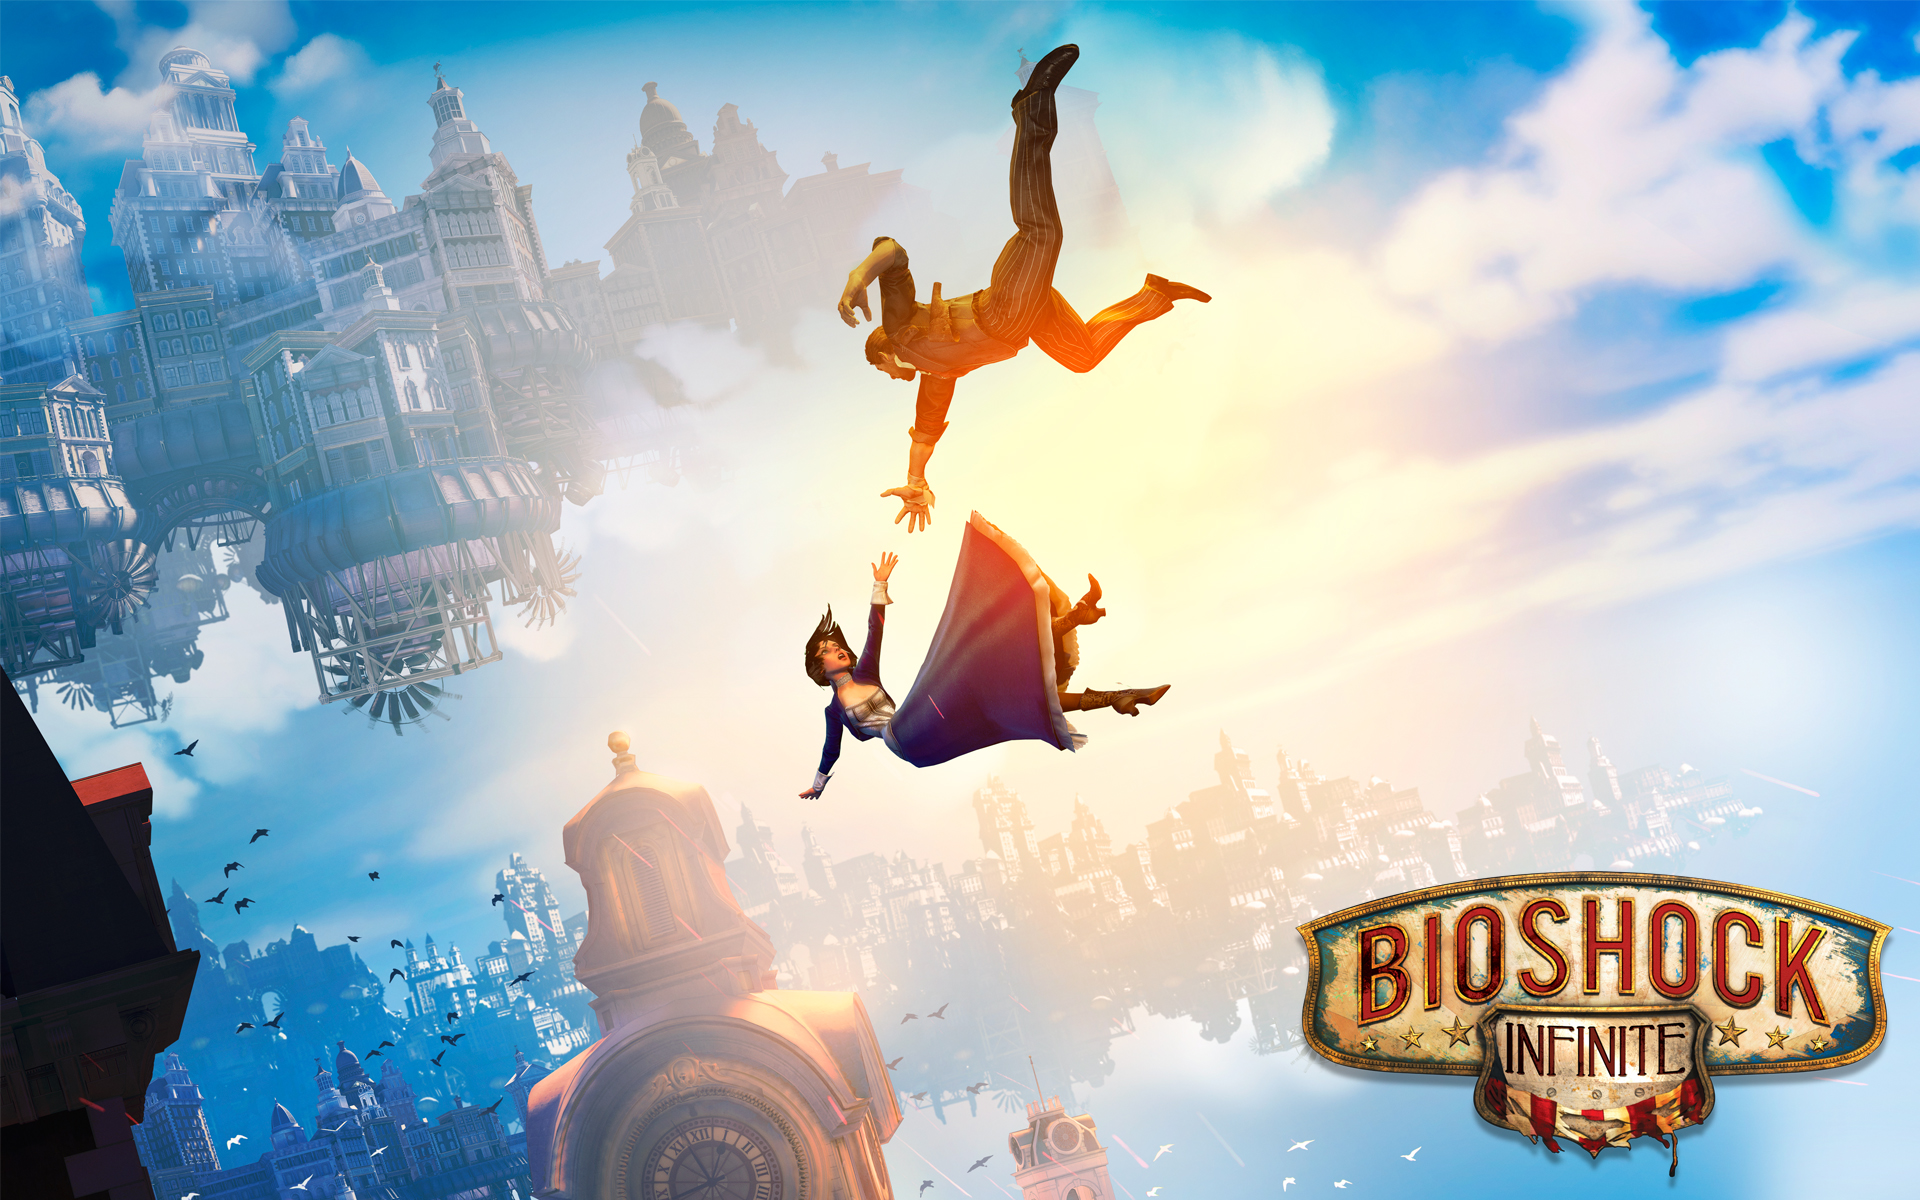 bioshock-infinite-leap-to-save-elizabeth